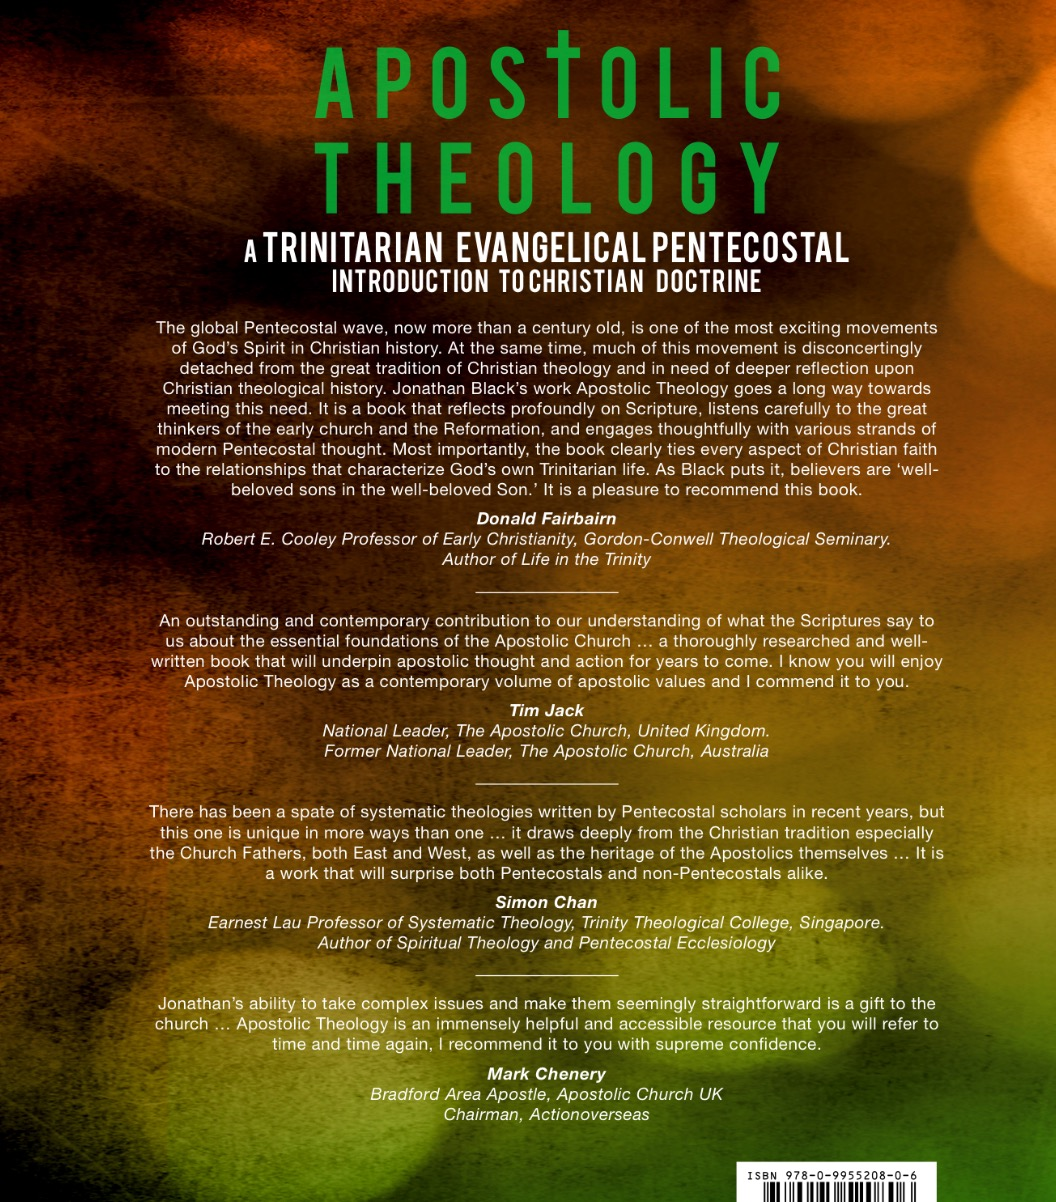 The Book - Apostolic Theology